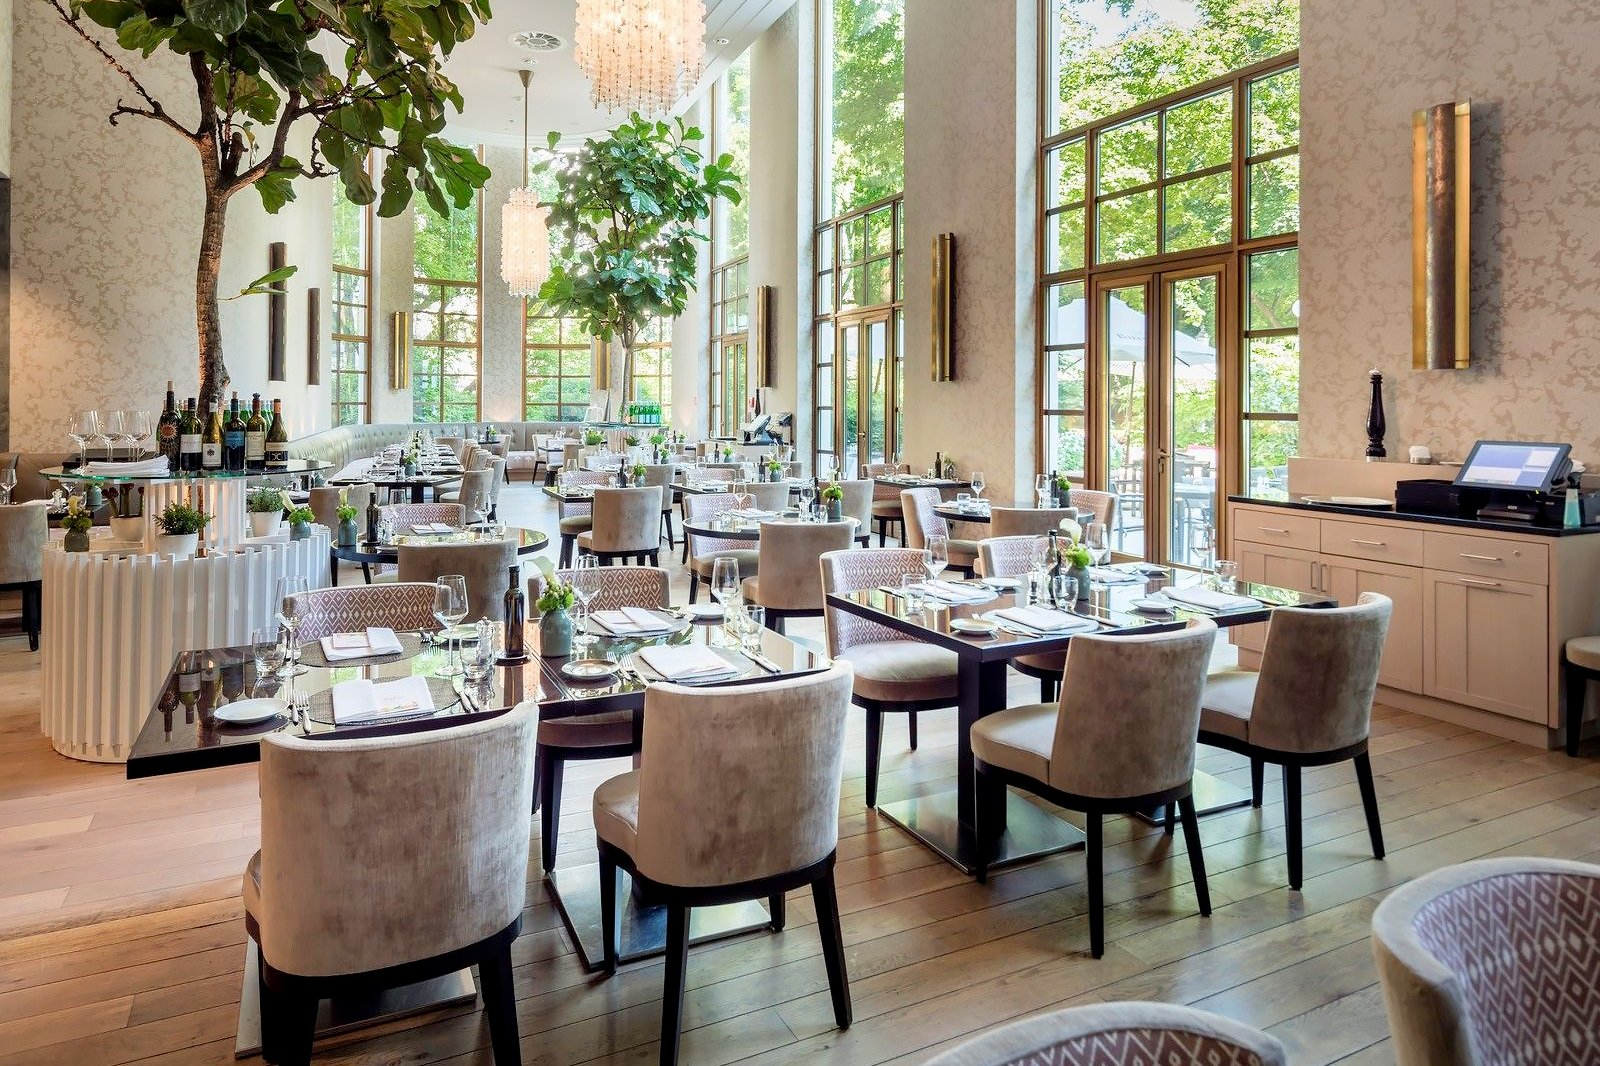 10 Best Hotels In Munich Loved By Guests Collection In